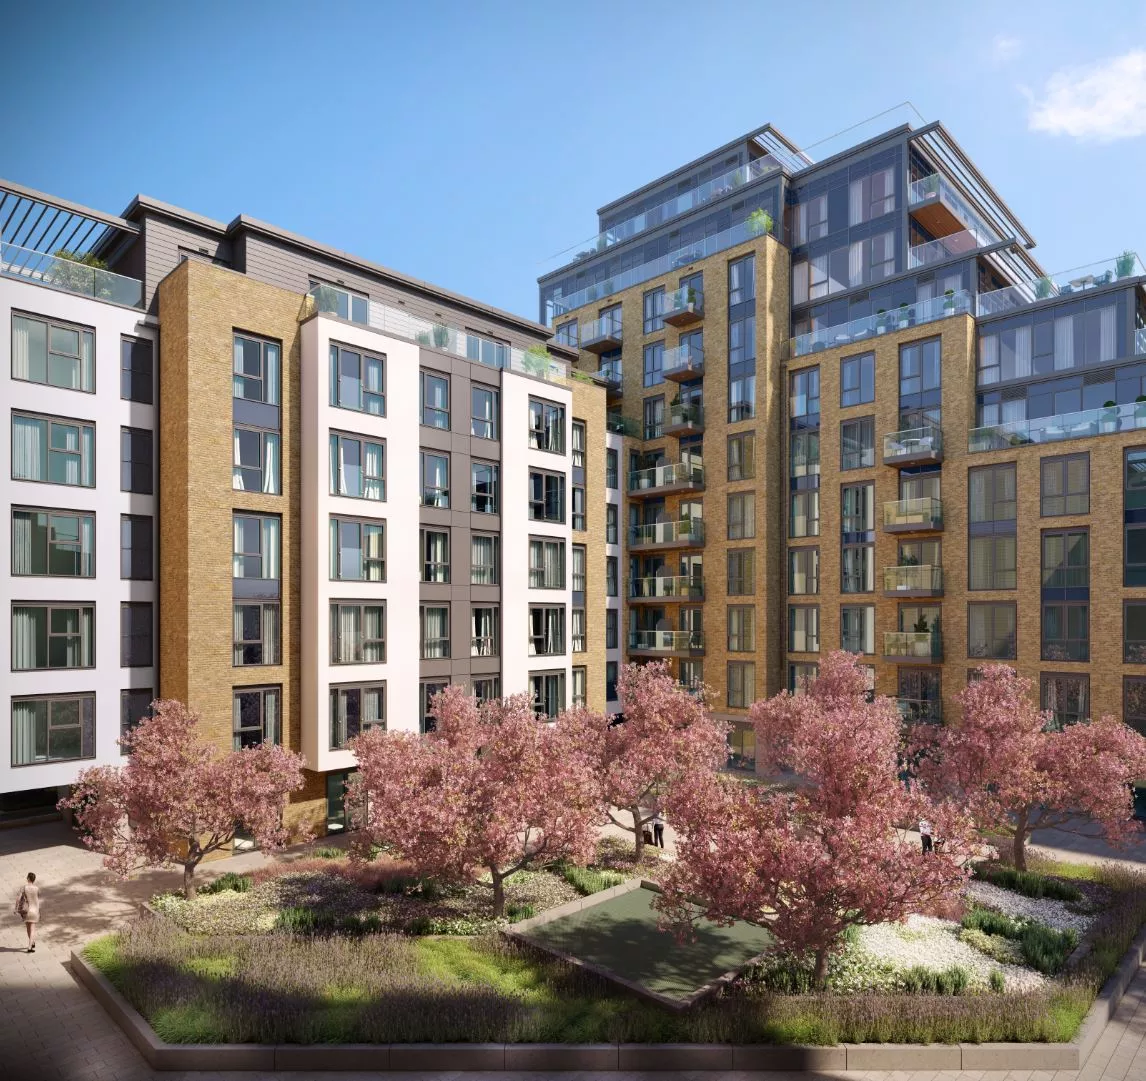 Two Bedroom Apartments London: 2 Bedroom Apartment